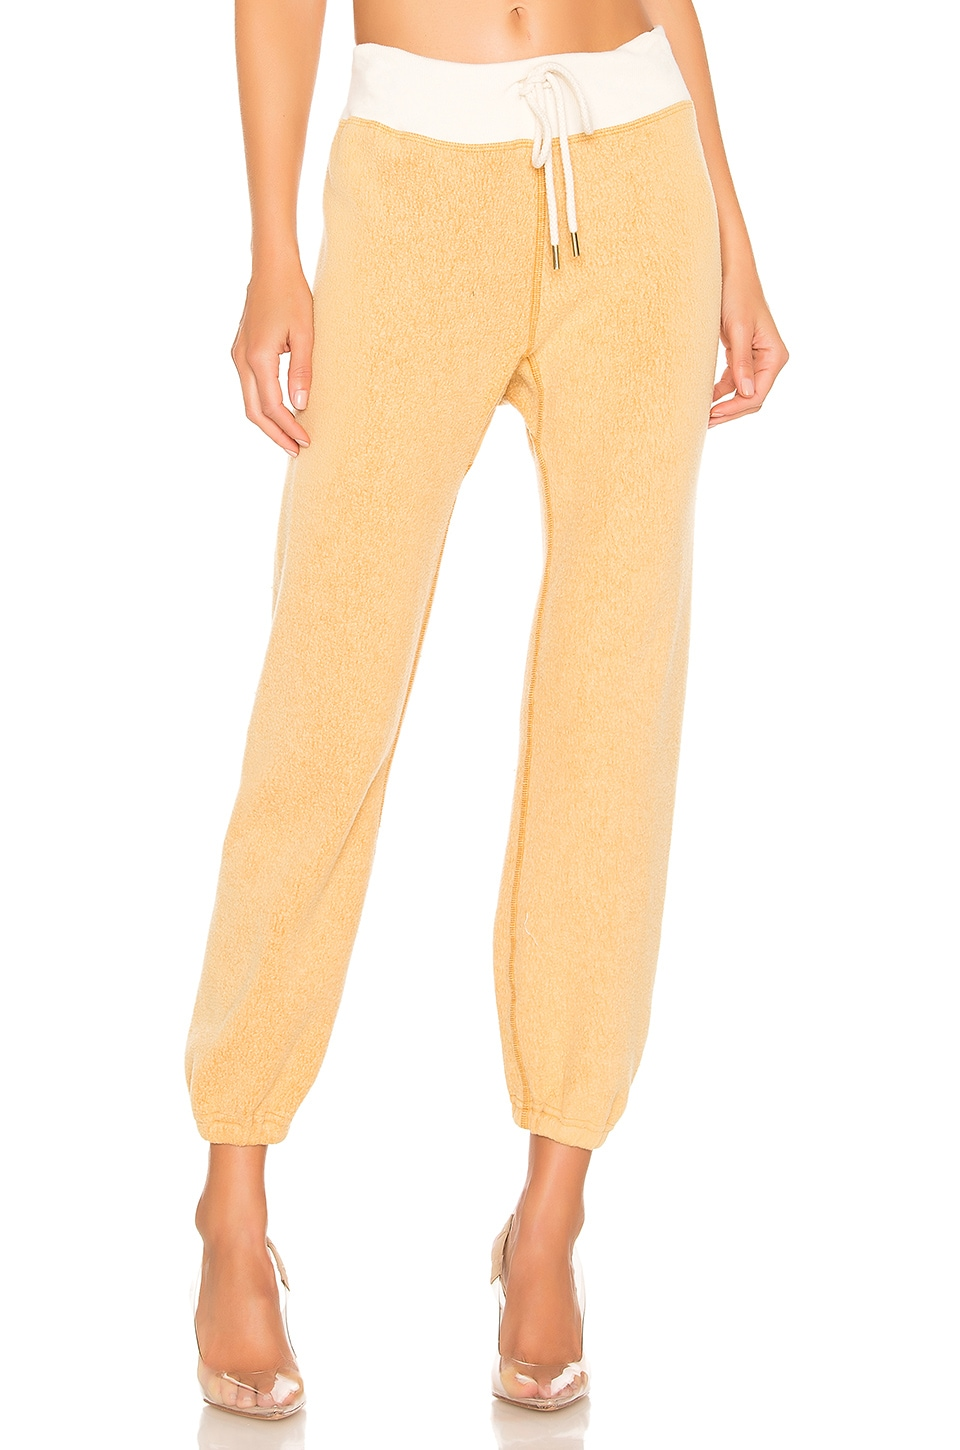 The Great The Warm Up Sweatpant in Goldenrod & Cream